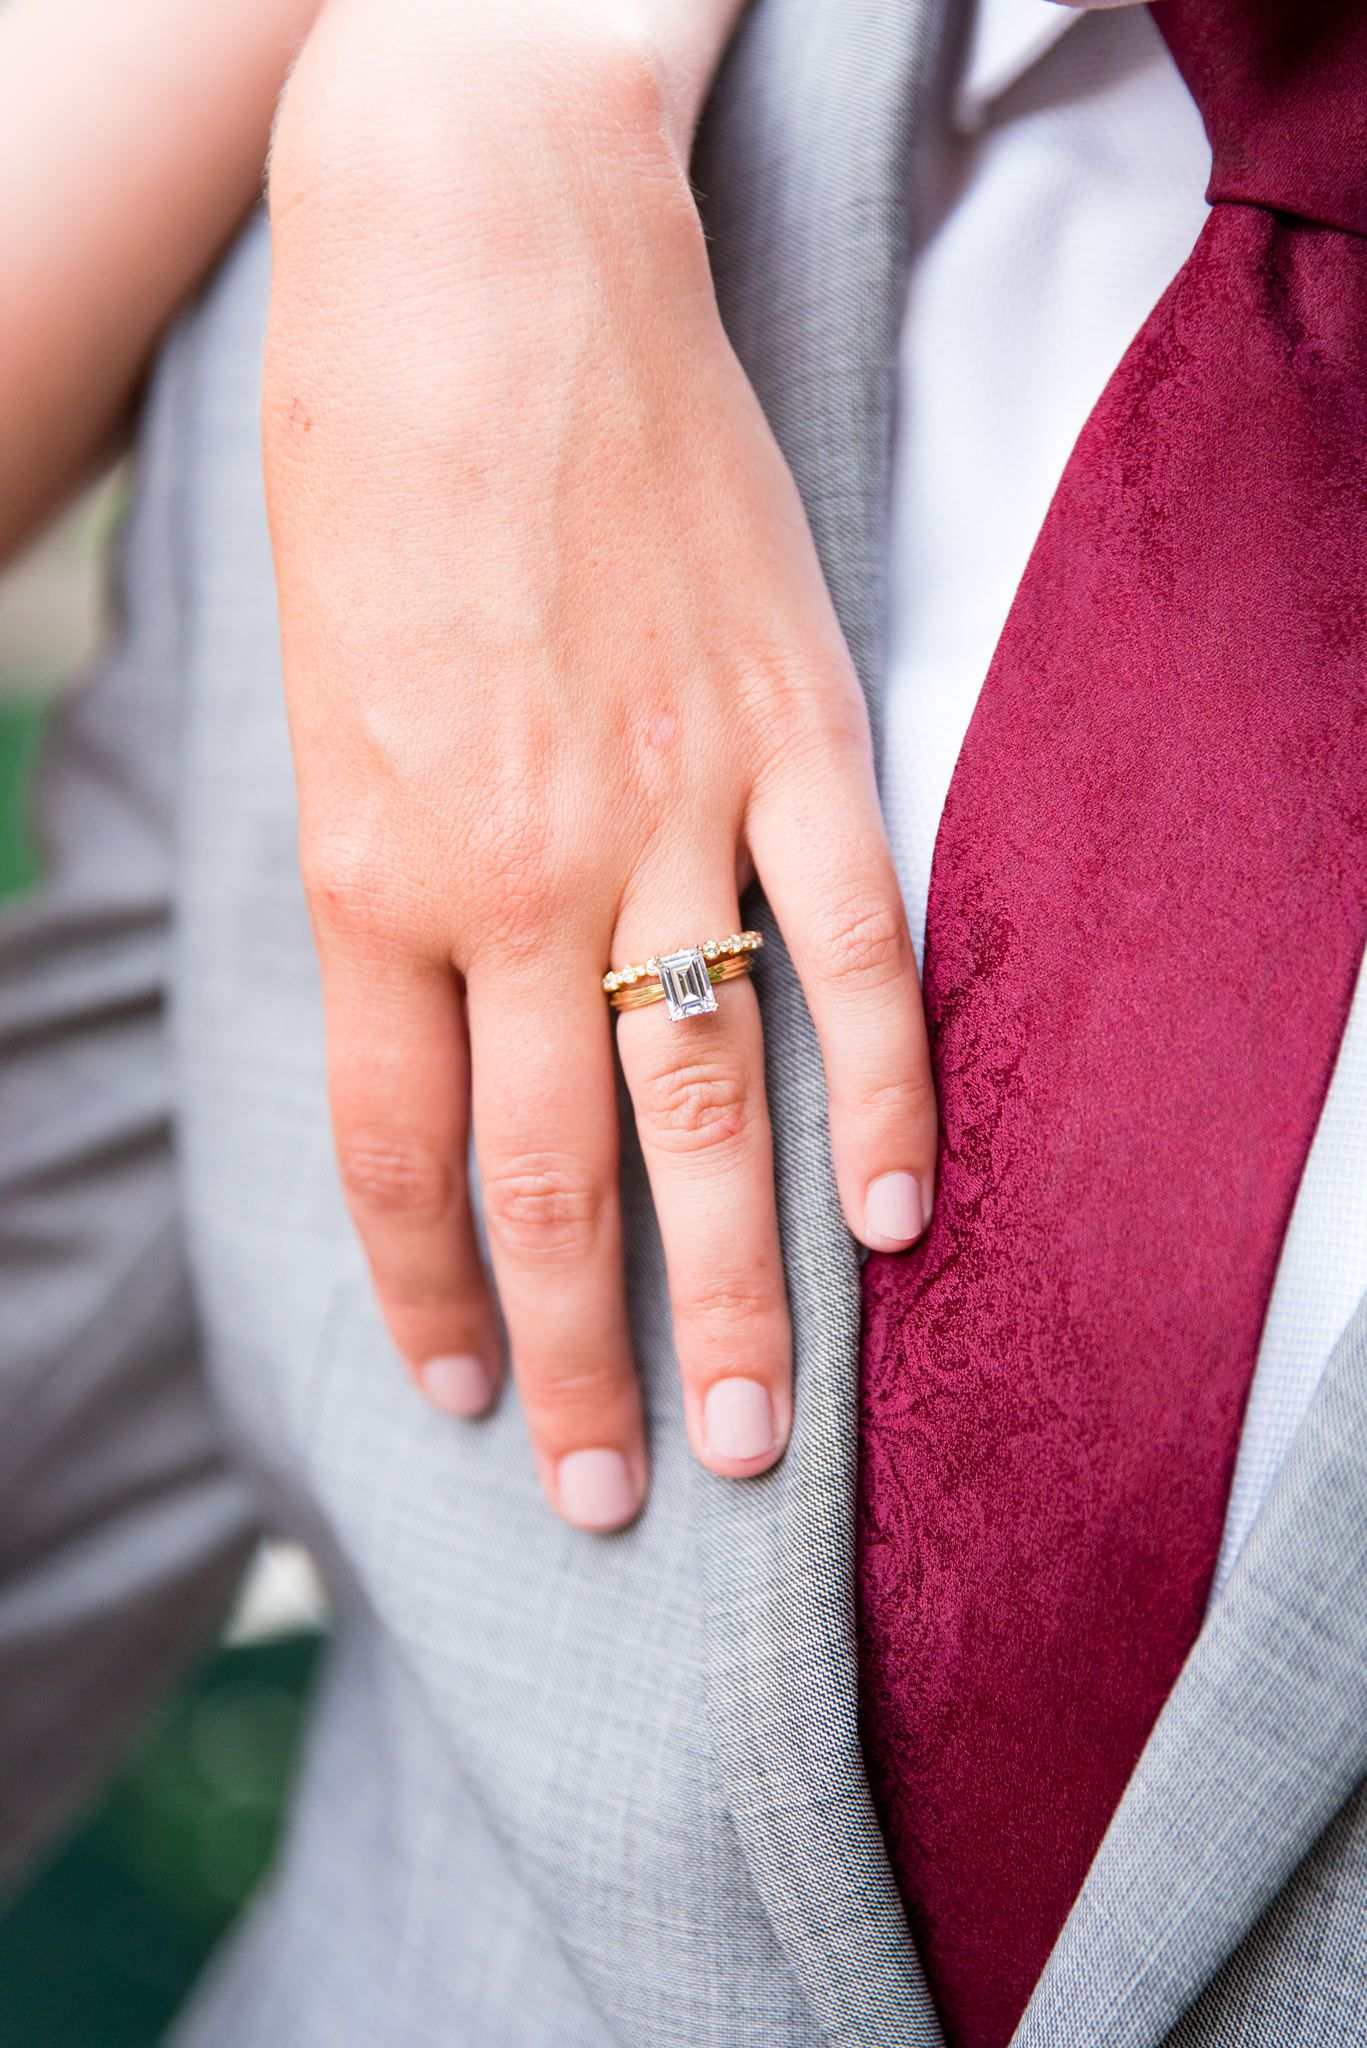 bride resting hand on grooms chest, showing her emerald cut engagement ring and his gray suit and red tie